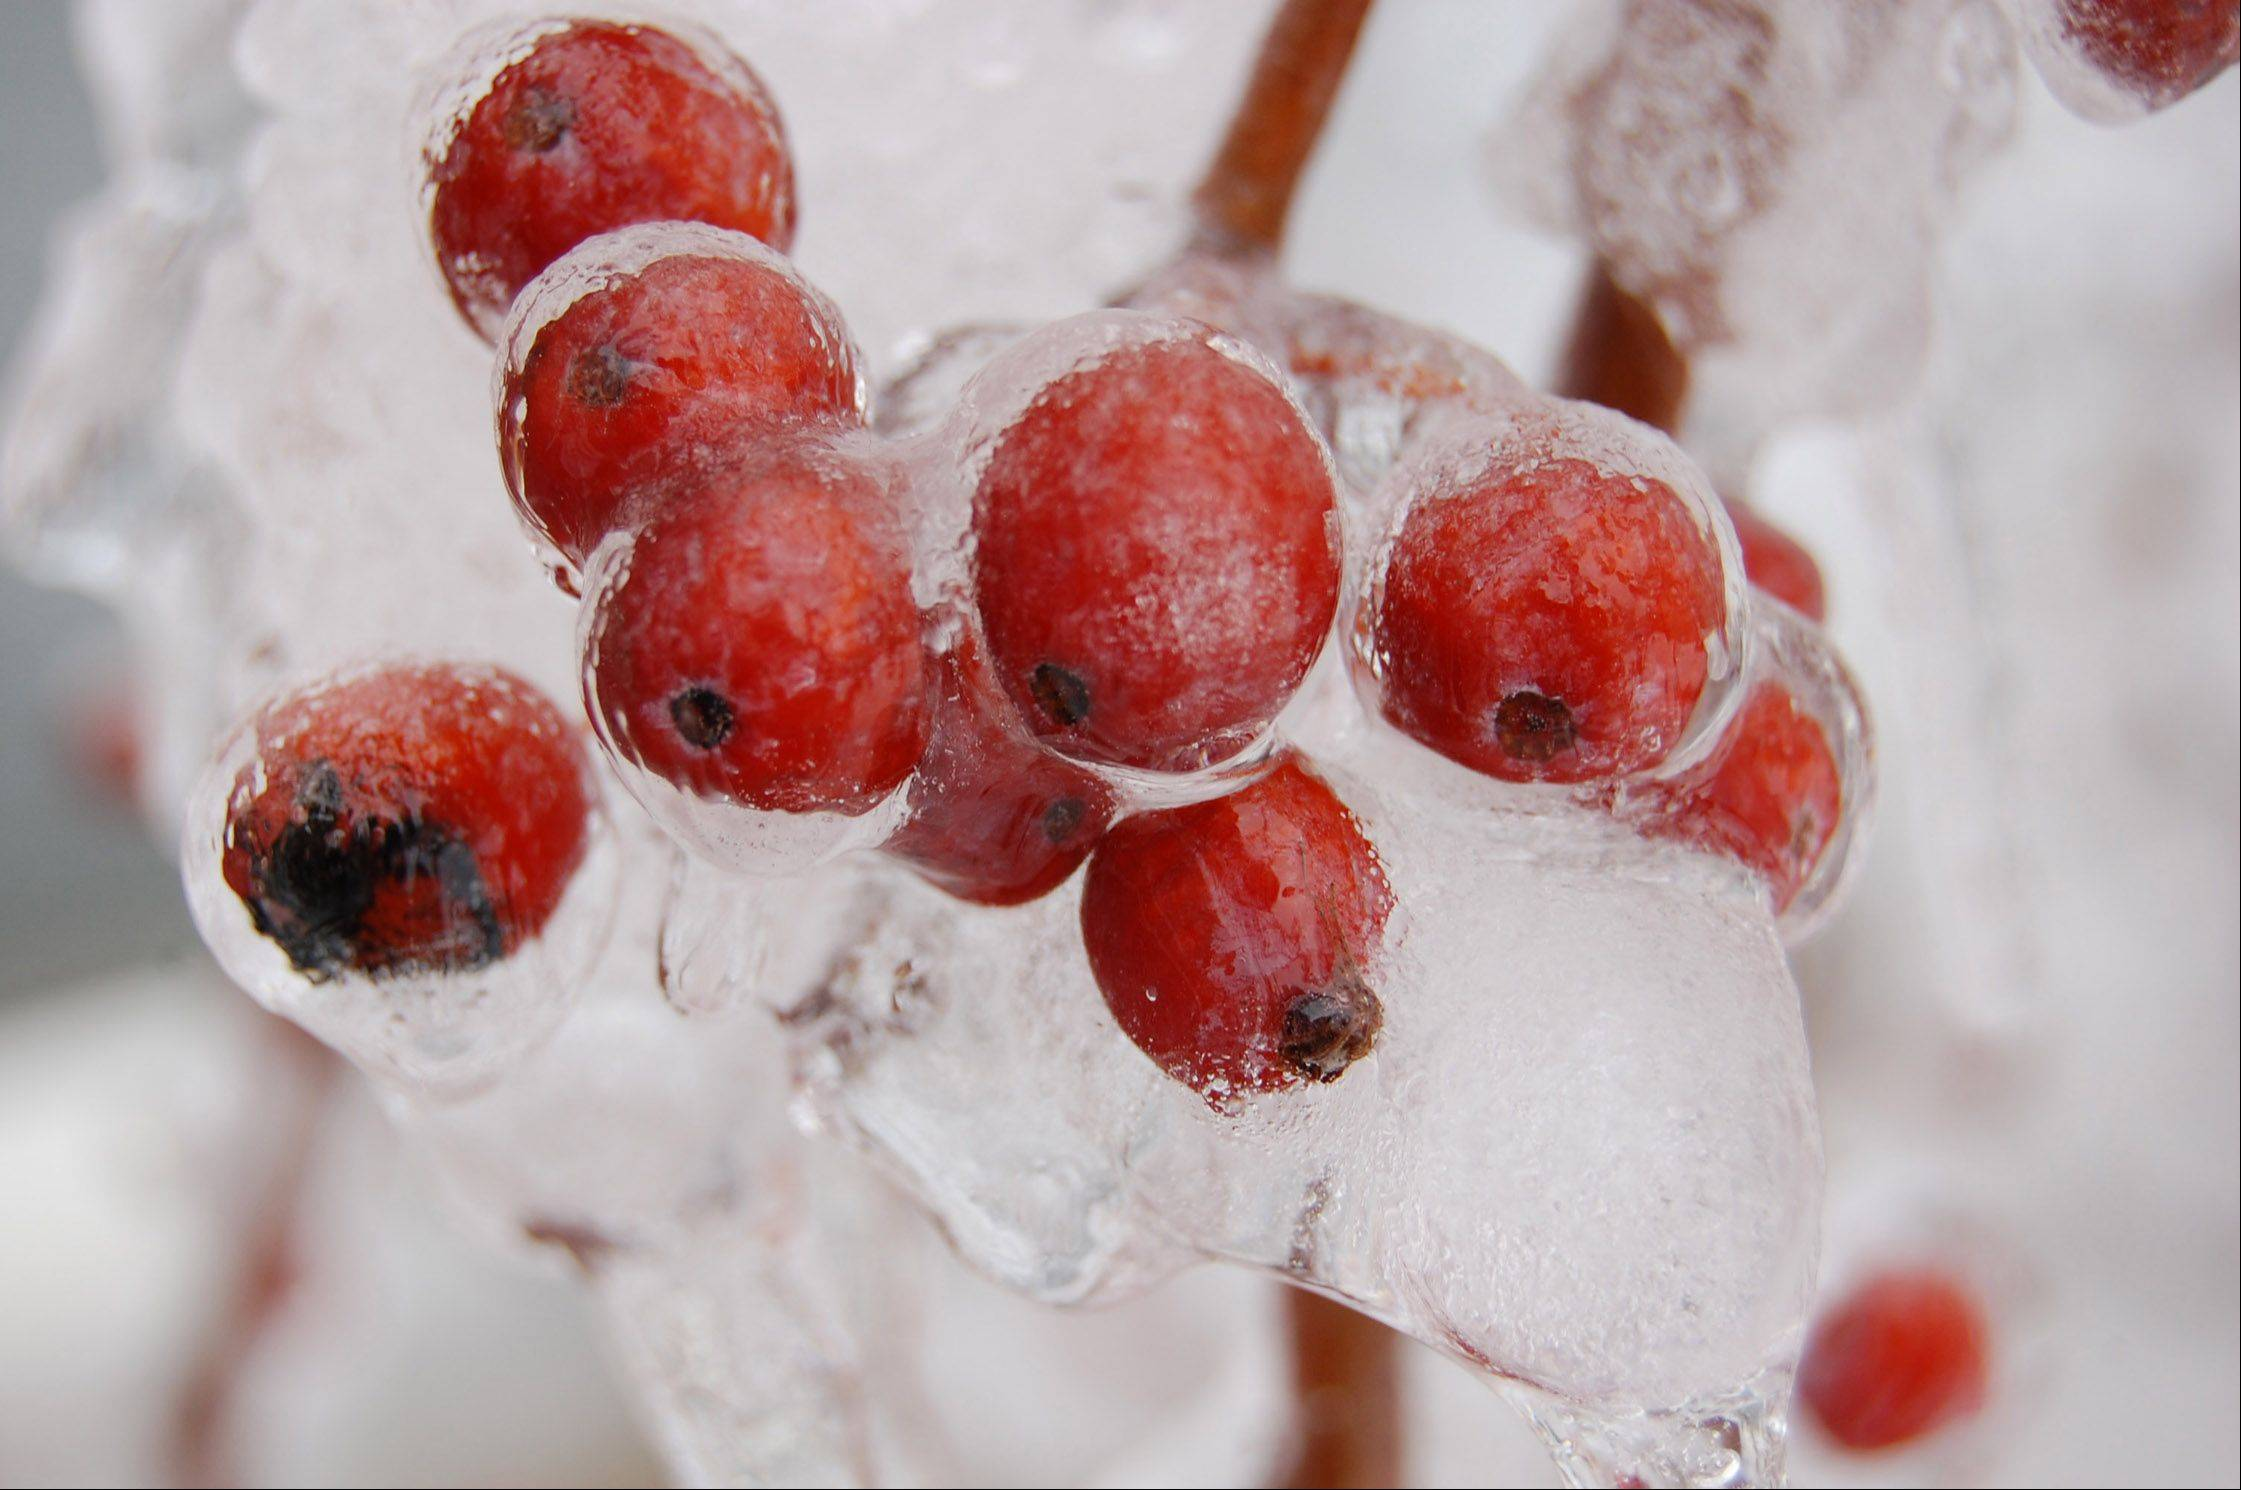 Berries are encased in ice on February 9th in a field in Lakemoor.